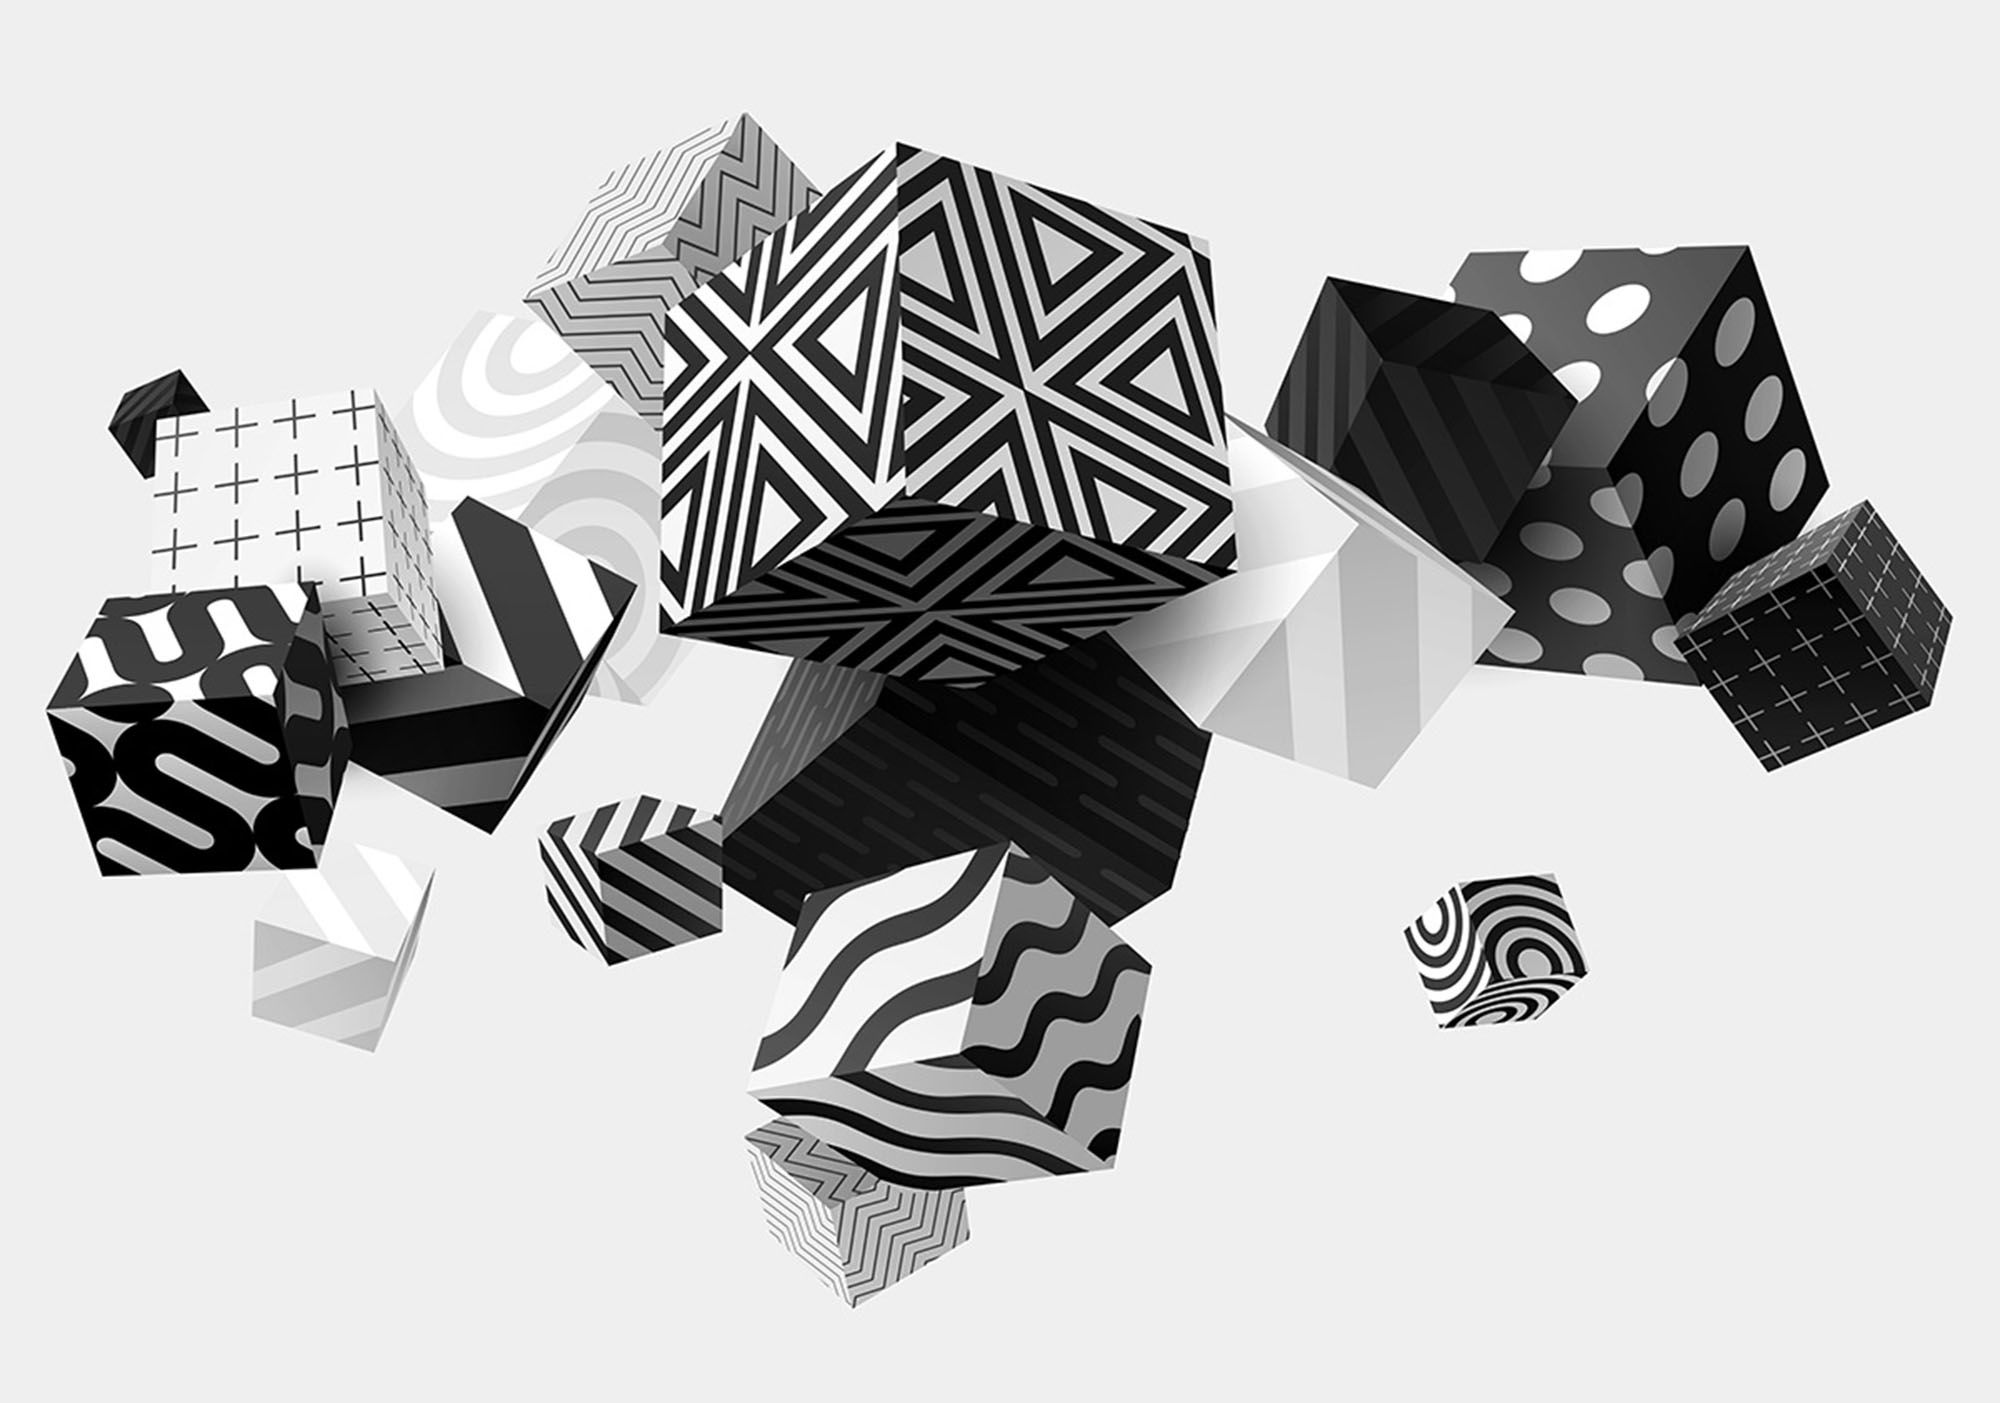 Details About 312x219cm Wall Mural Photo Wallpaper 3D Perspective Black & White Cubes Glue